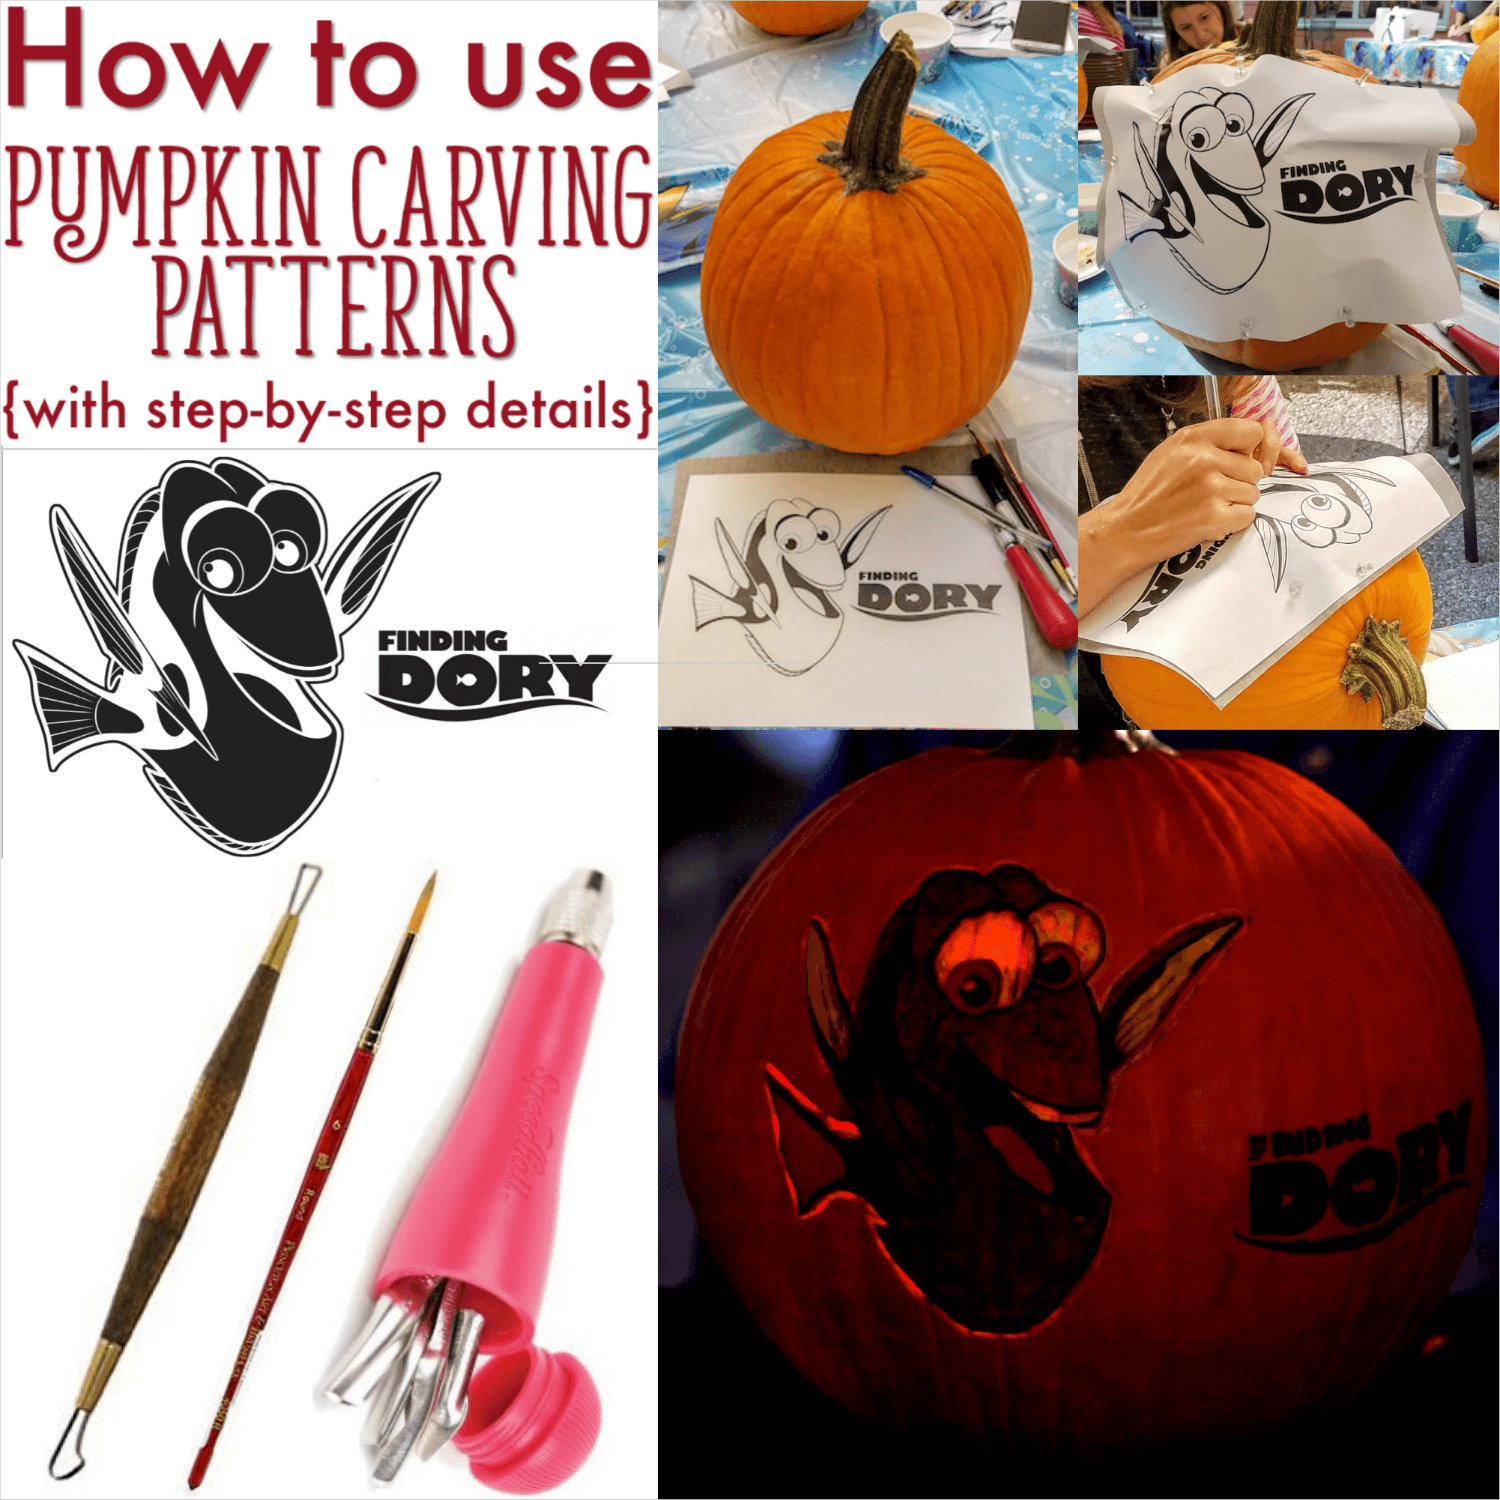 how to use pumpkin carving patterns